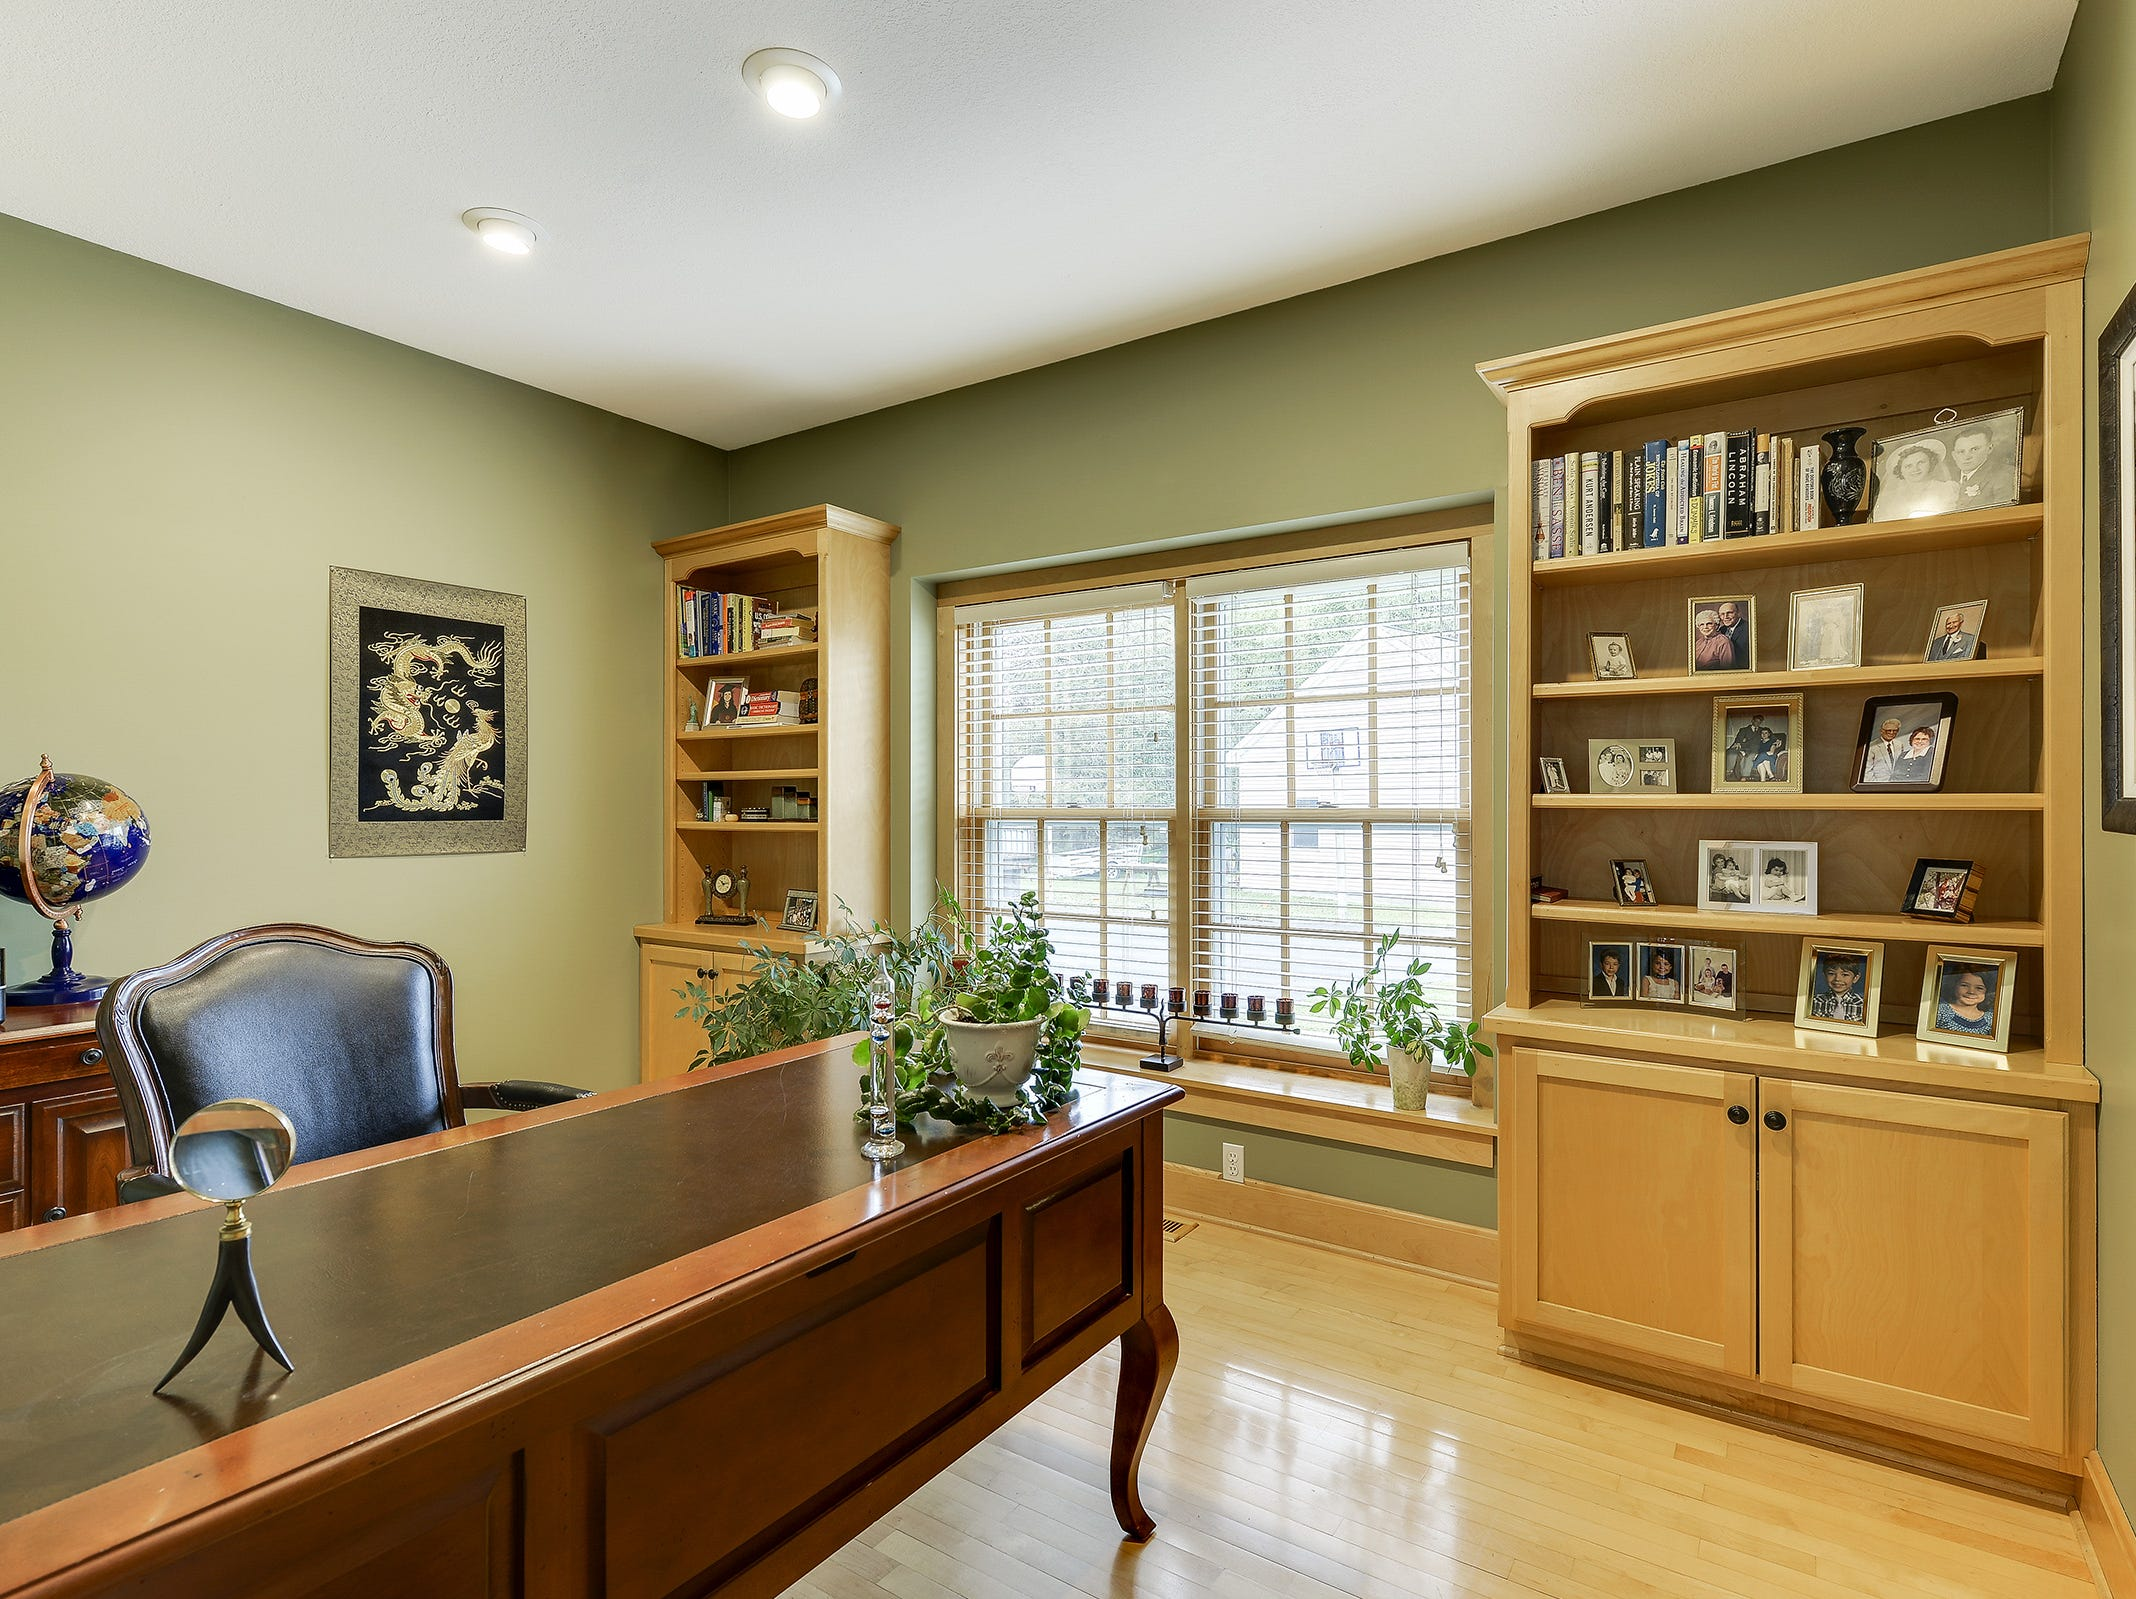 The main floor houses an in-home office with wood floors and built-in bookshelves.